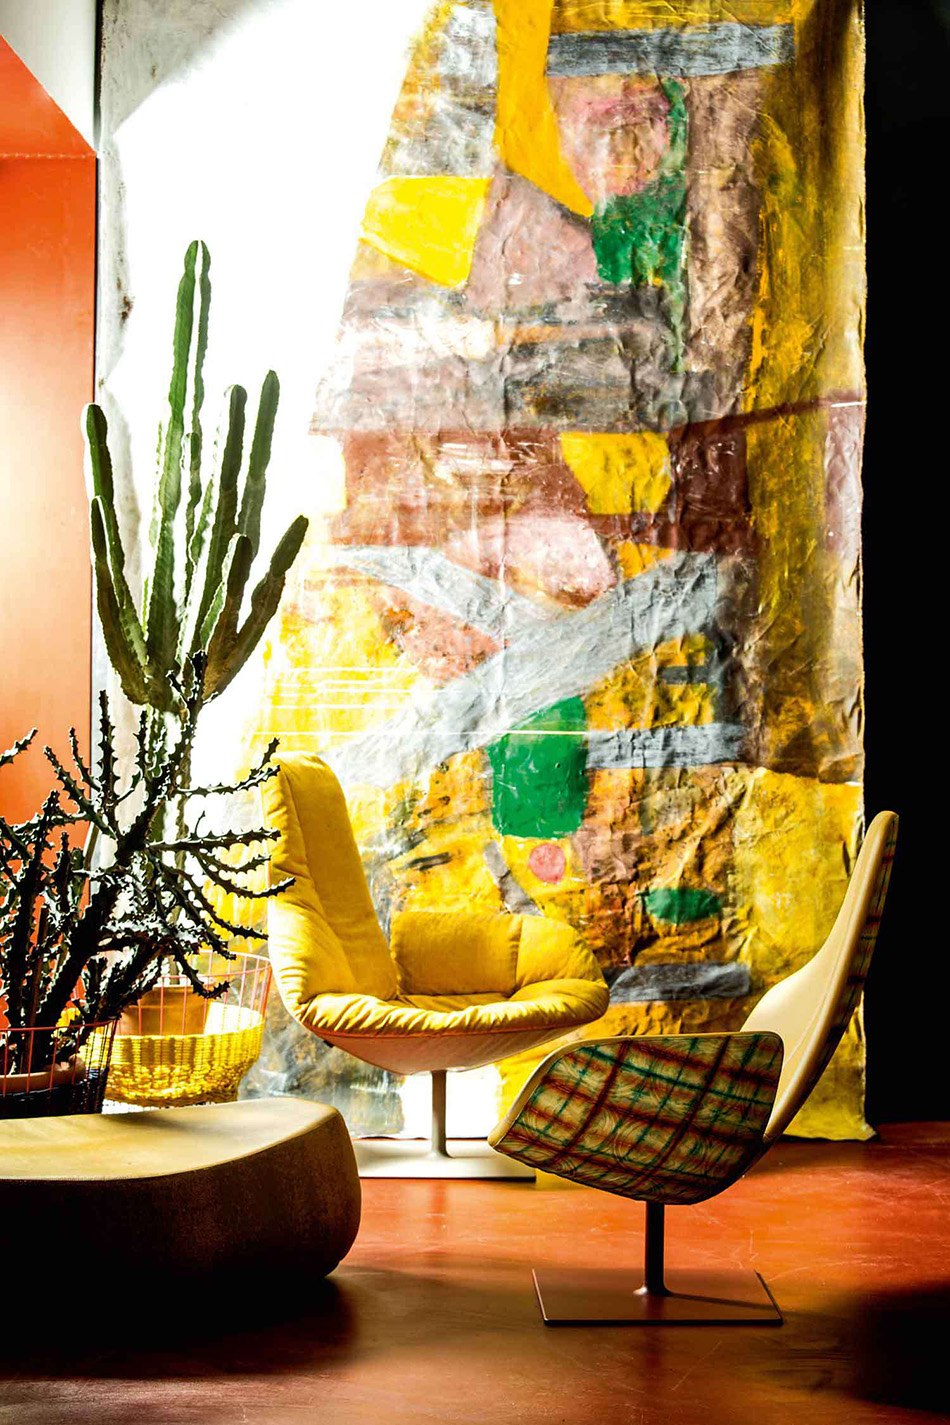 Moroso-Product-Shot-at-Patrizia-Moroso-House-Yellowtrace-13